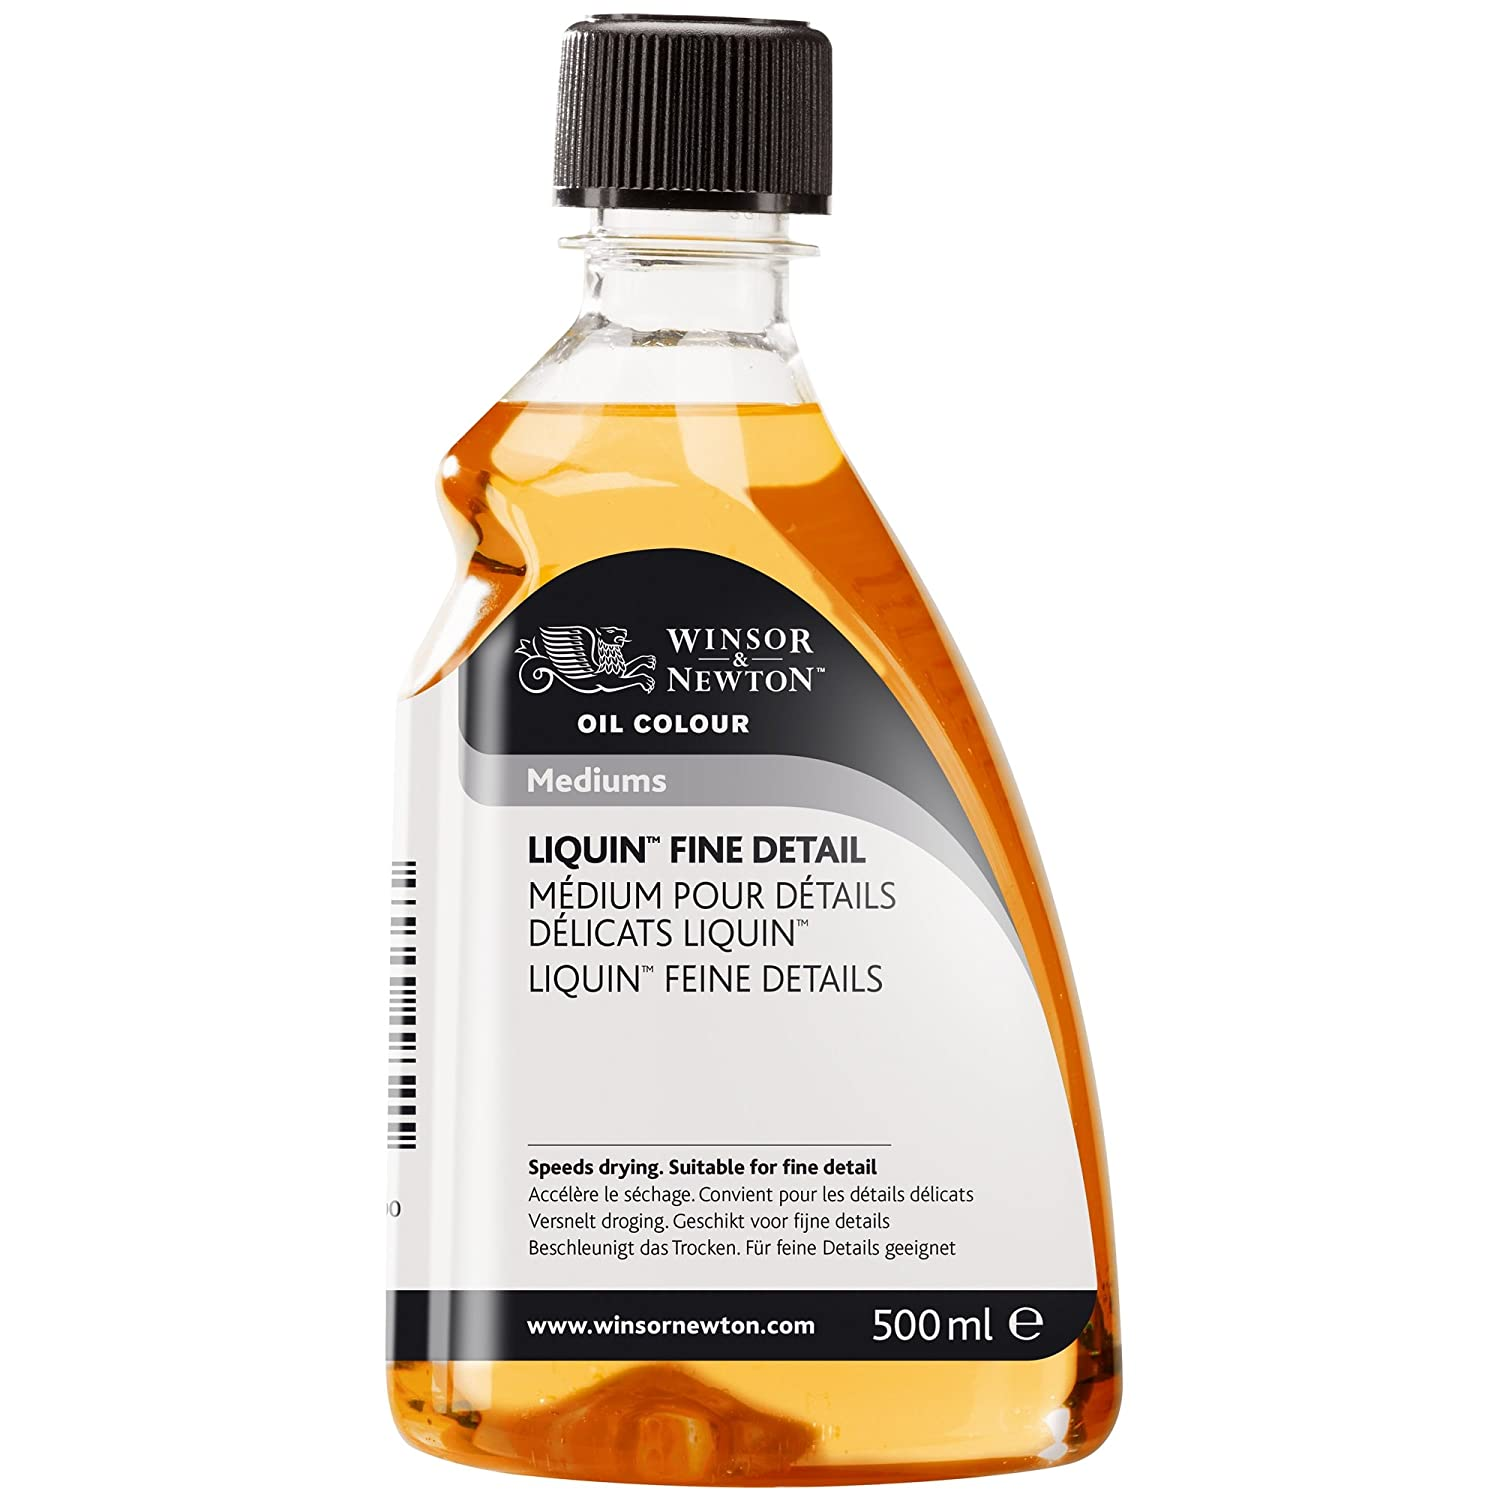 Winsor & Newton Liquin Fine Detail Medium, 500ml 3249752